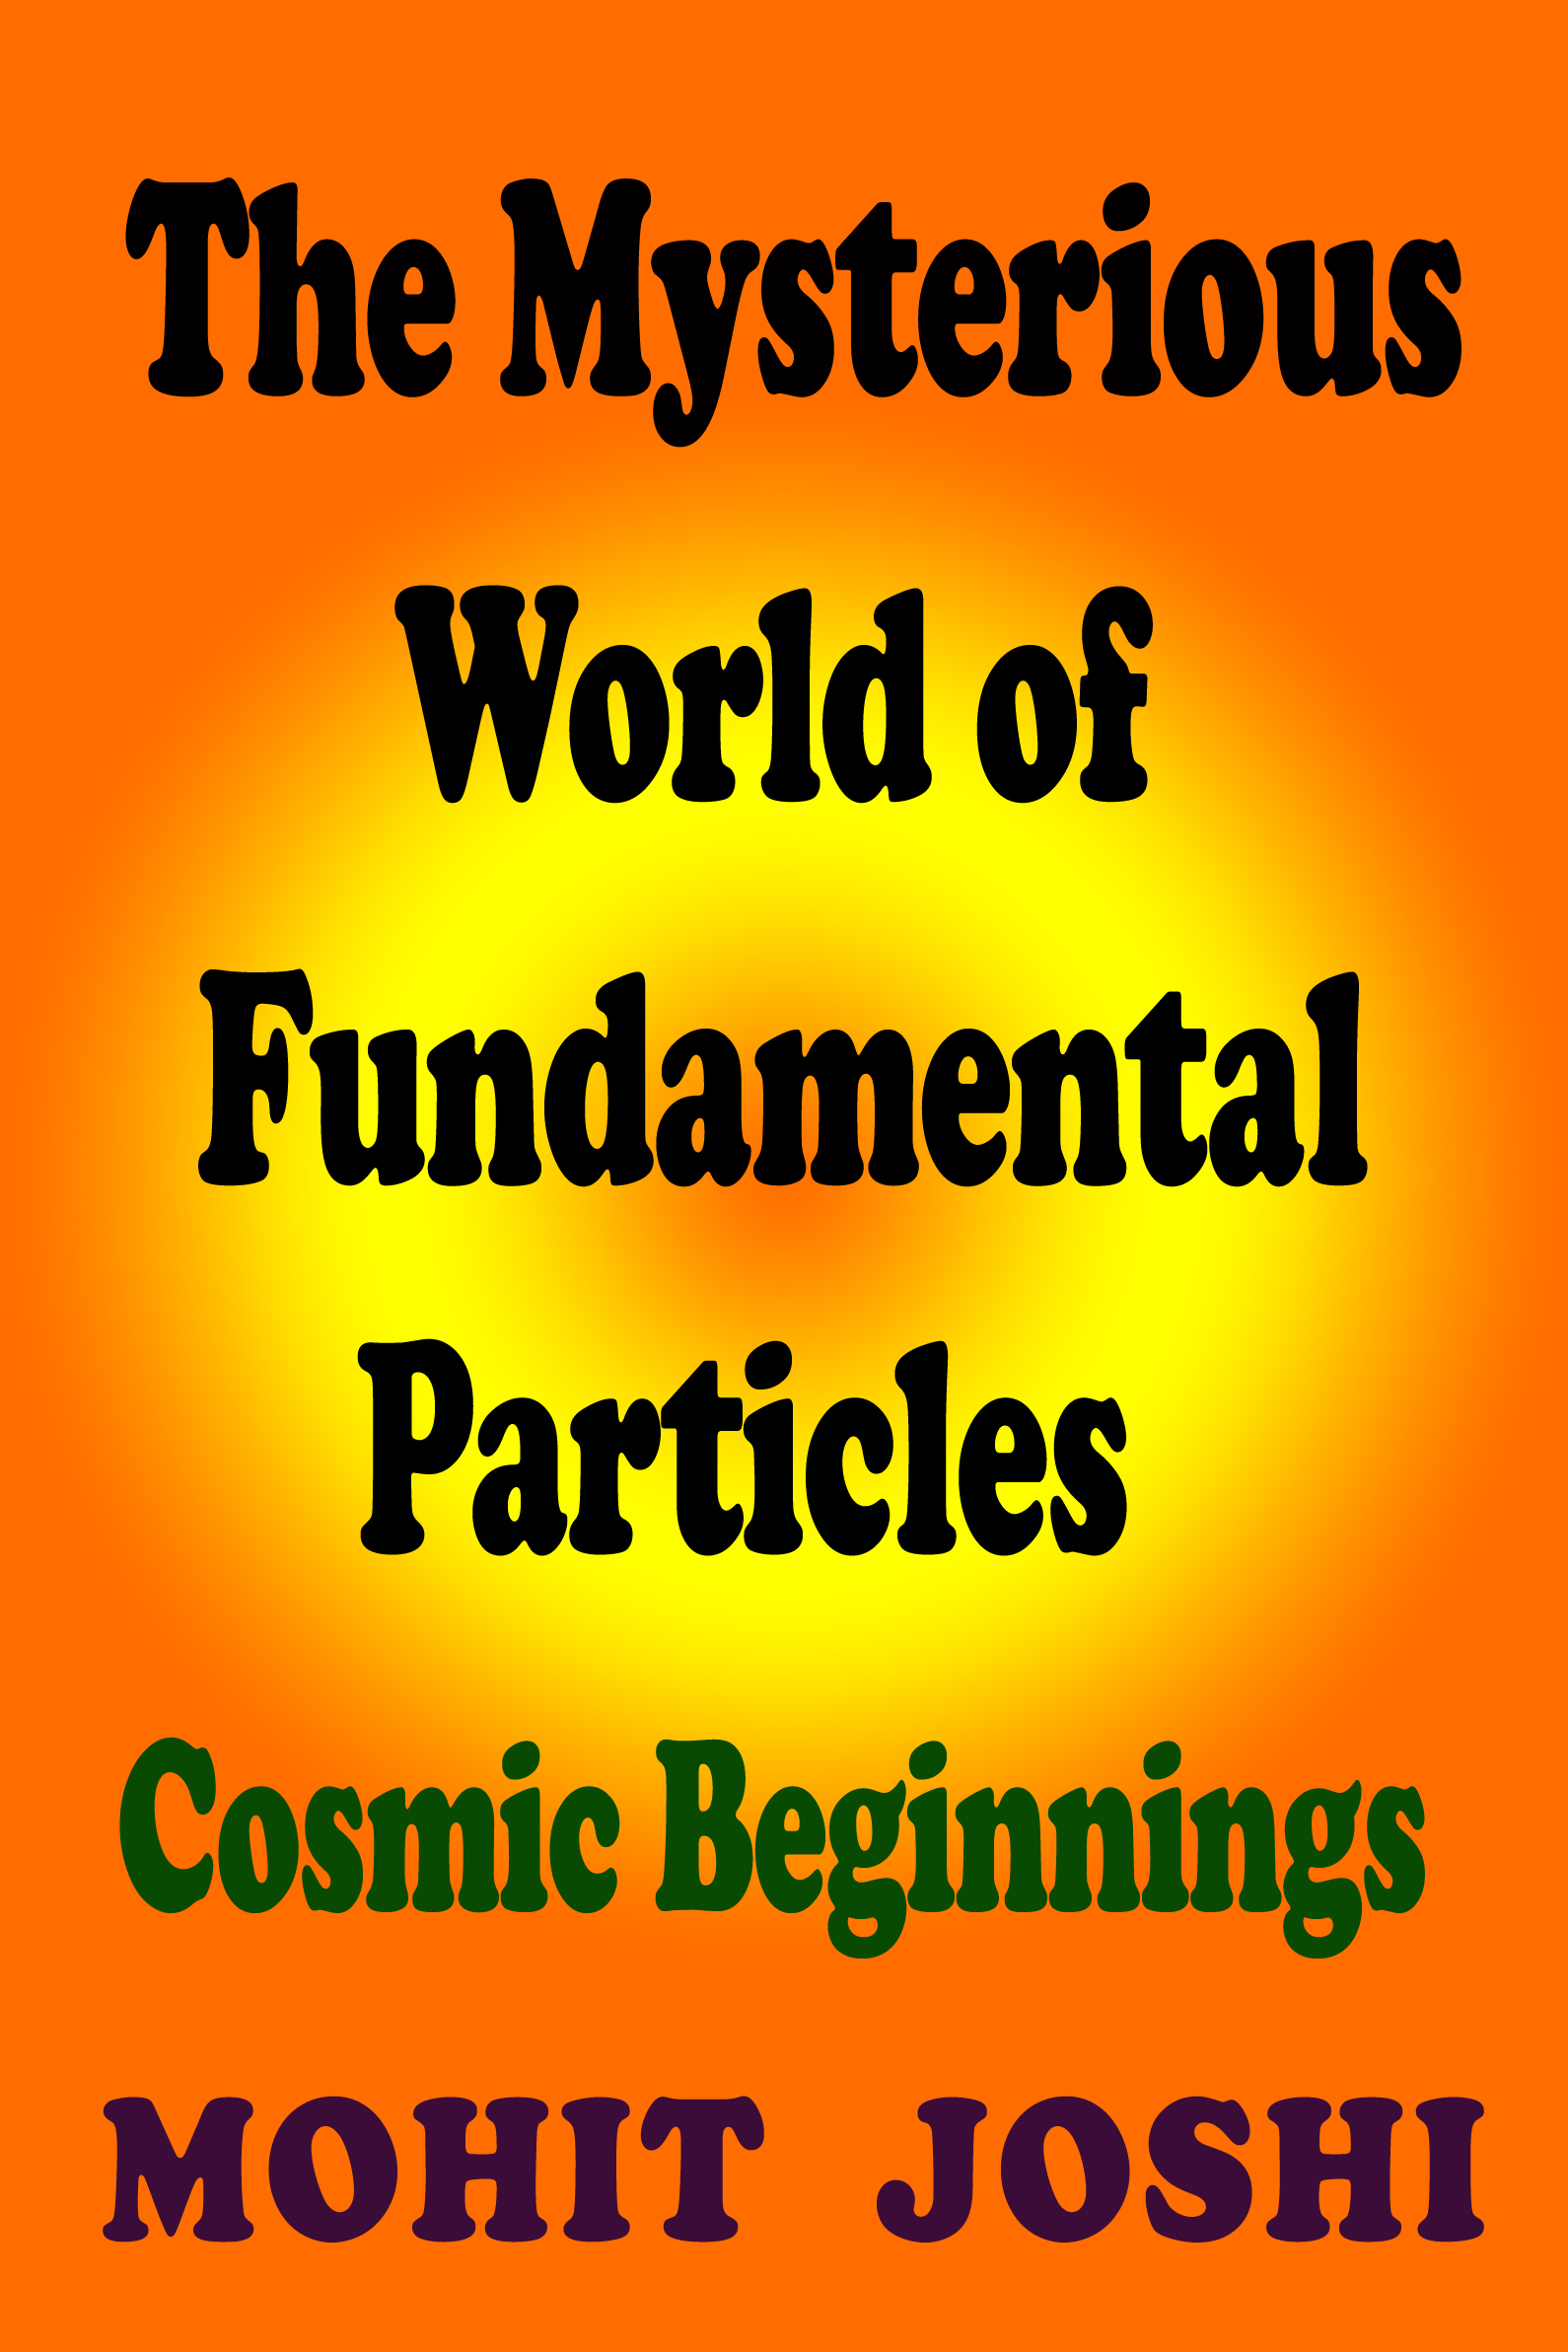 mohitjoshi.com, the mysterious world of fundamental particles